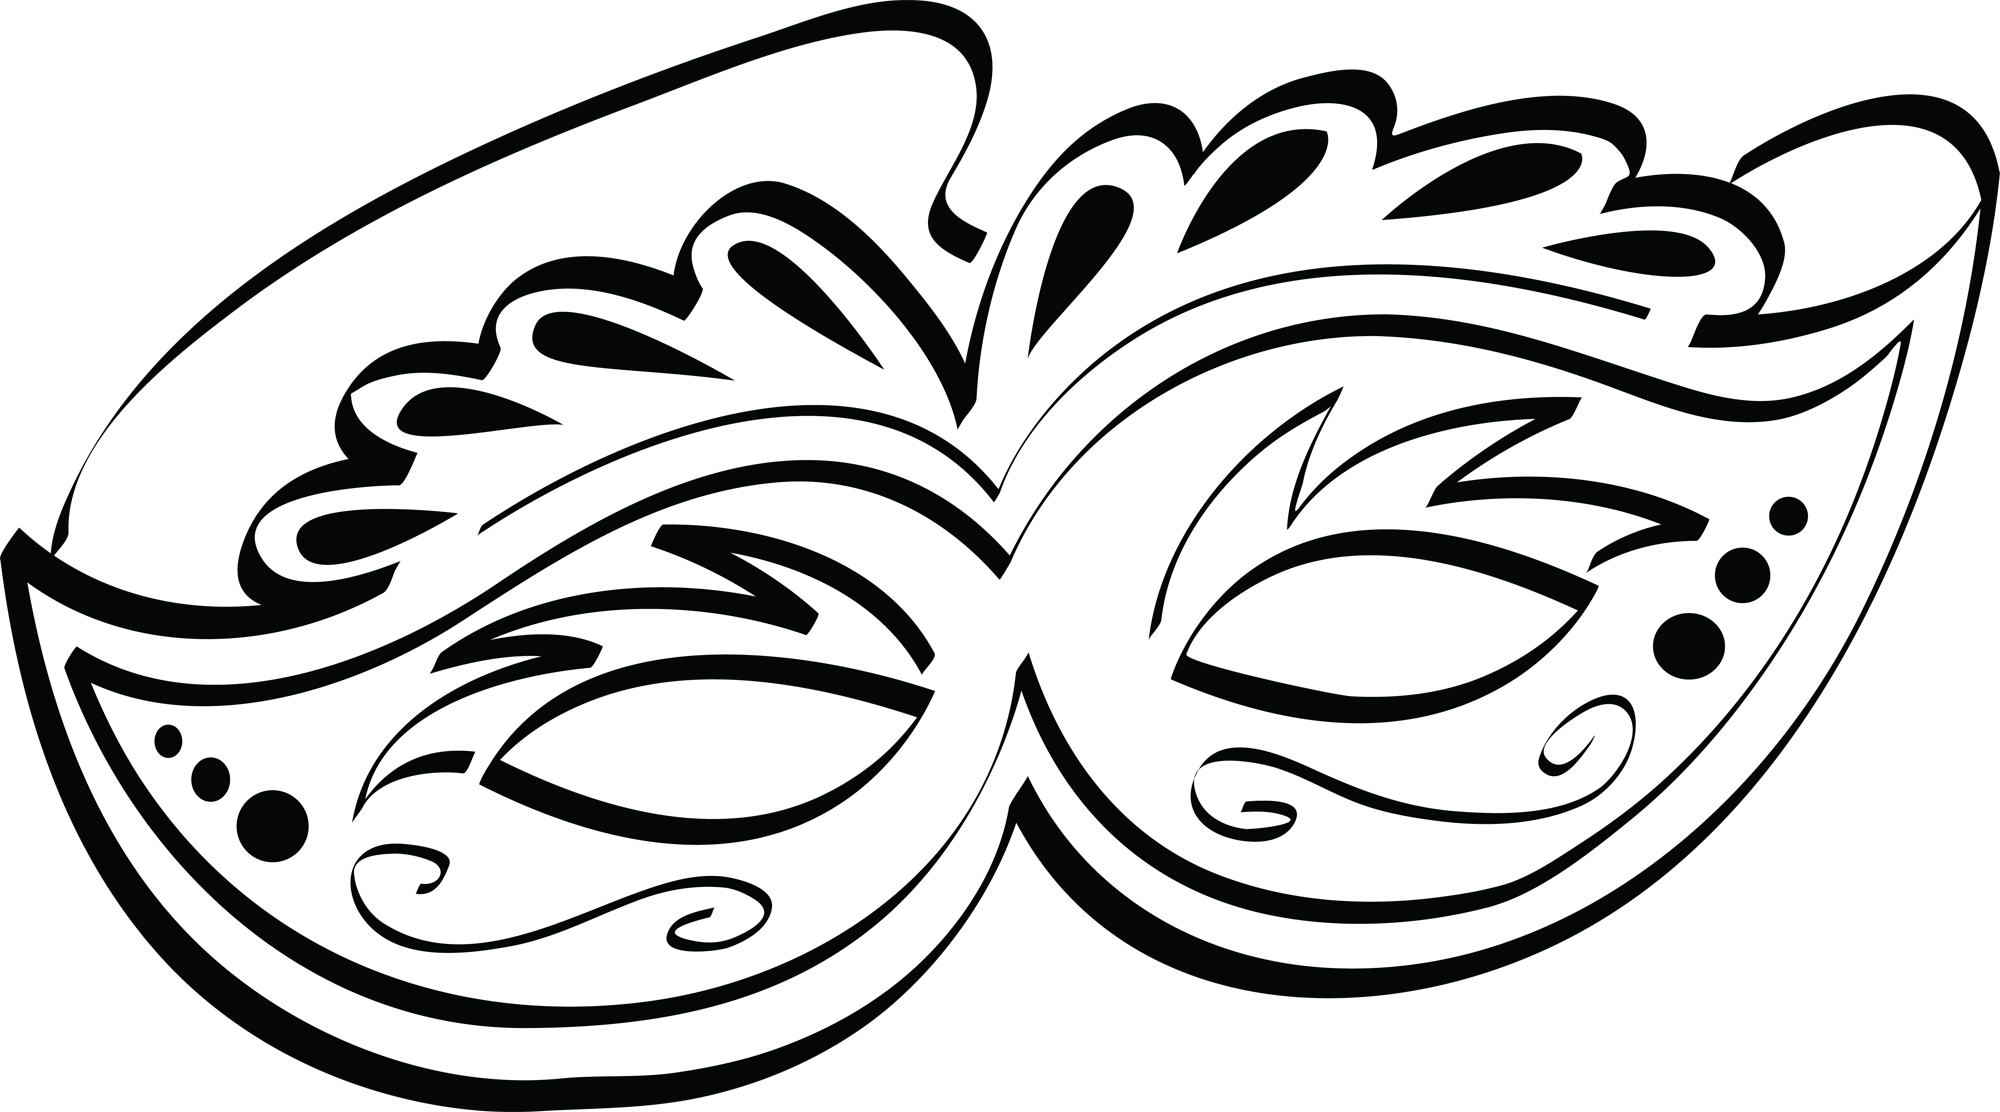 Free Mask Clipart Black And White, Download Free Clip Art.